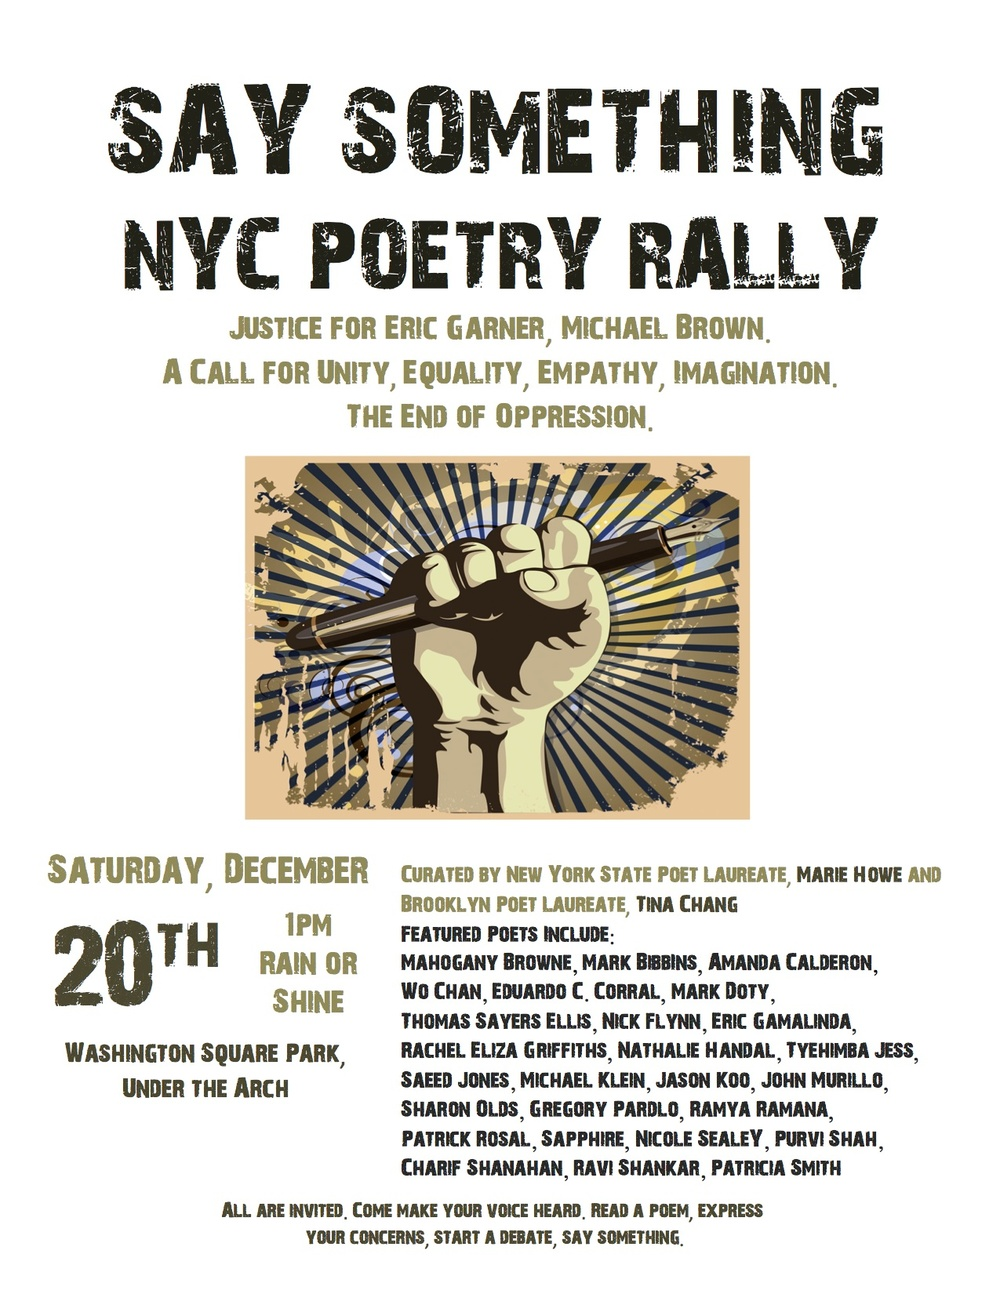 Next Saturday, Dec. 20. At Washington Square NYC